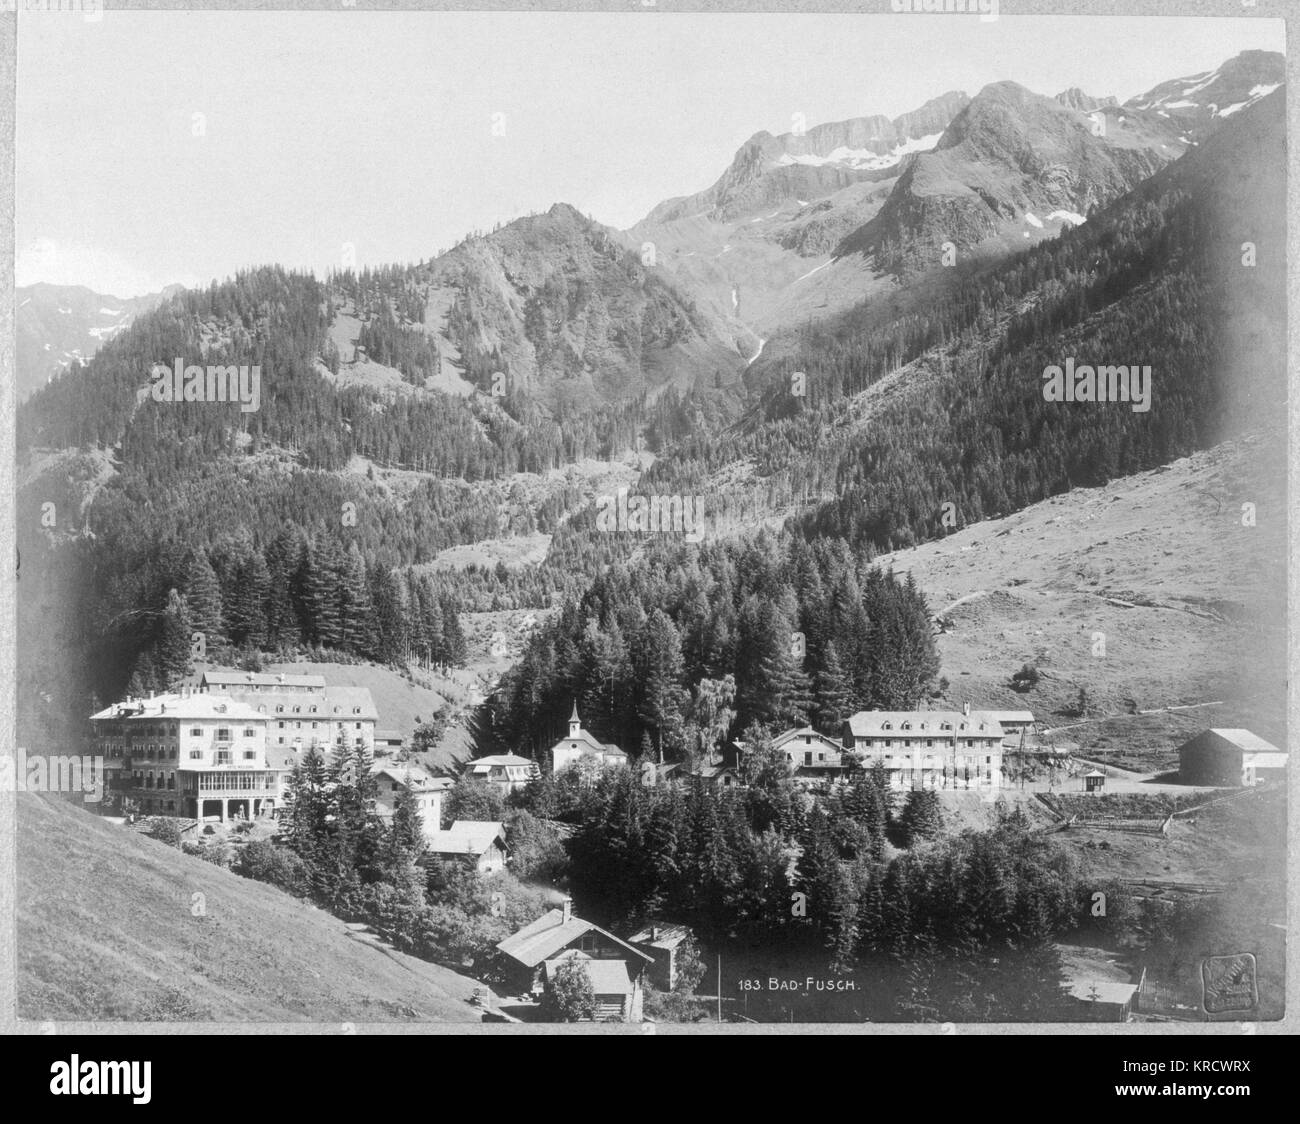 Bad Fusch: Austrian spa town Date: Early Twentieth century - Stock Image